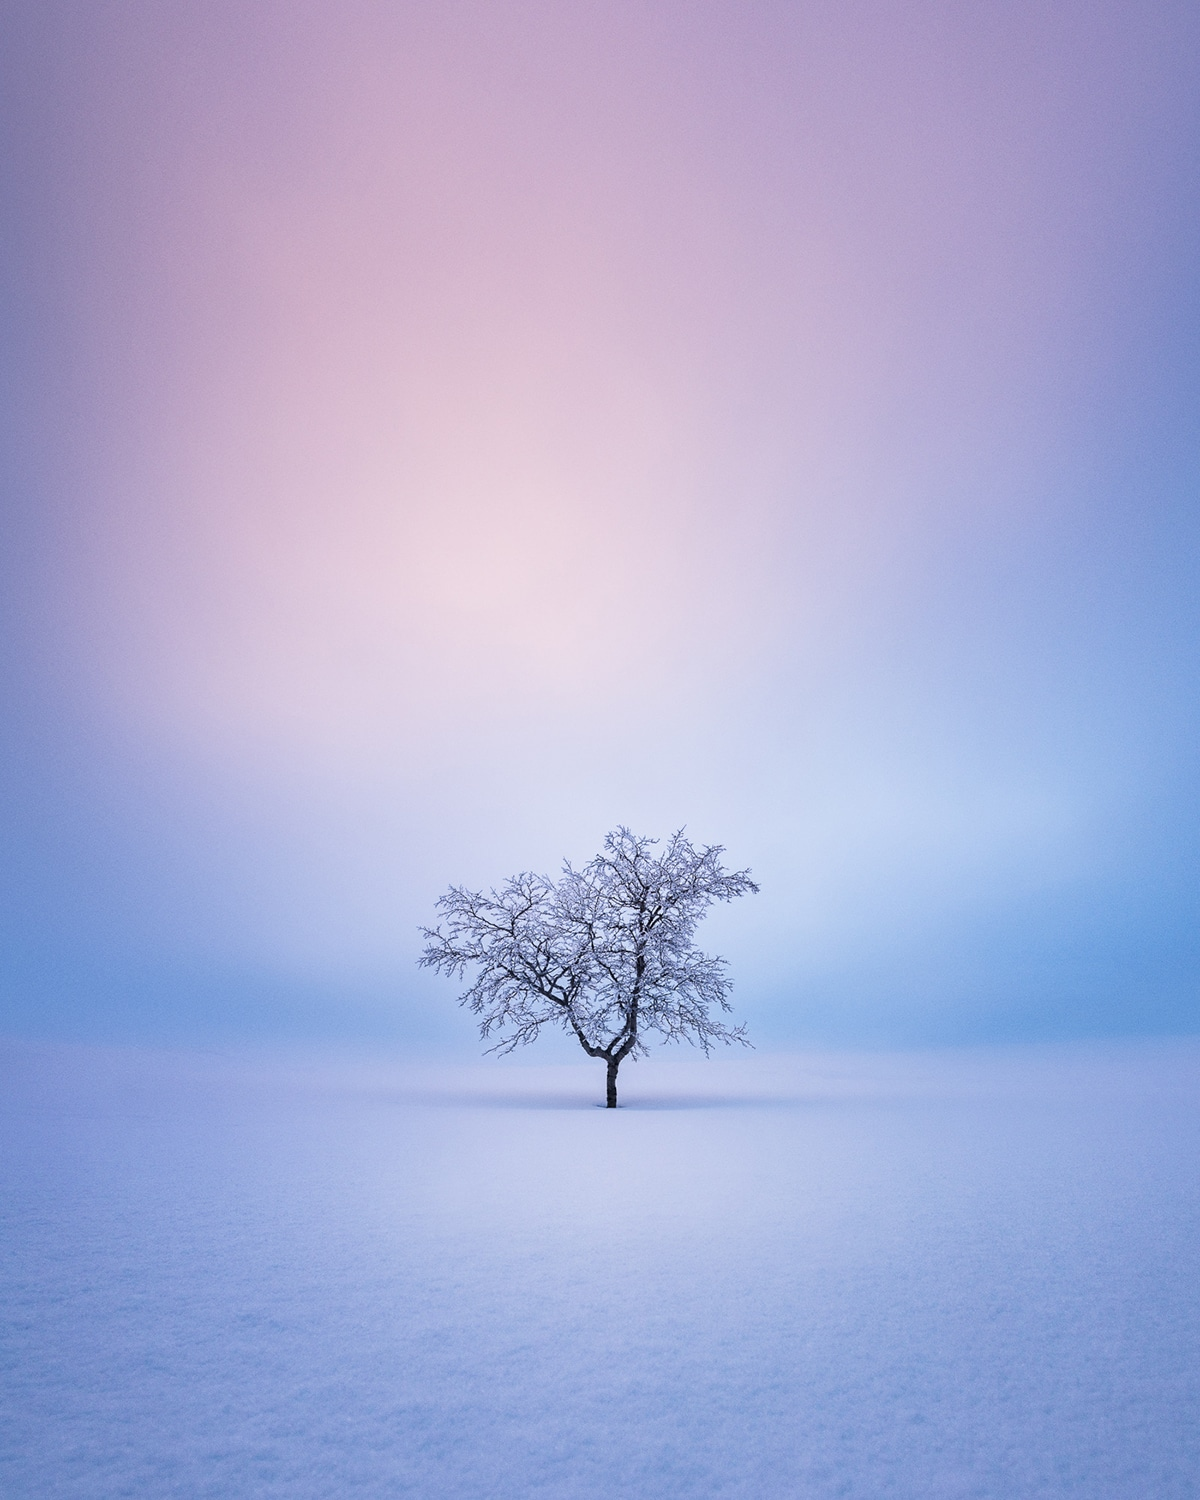 Tree Photograph by Mikko Lagerstedt